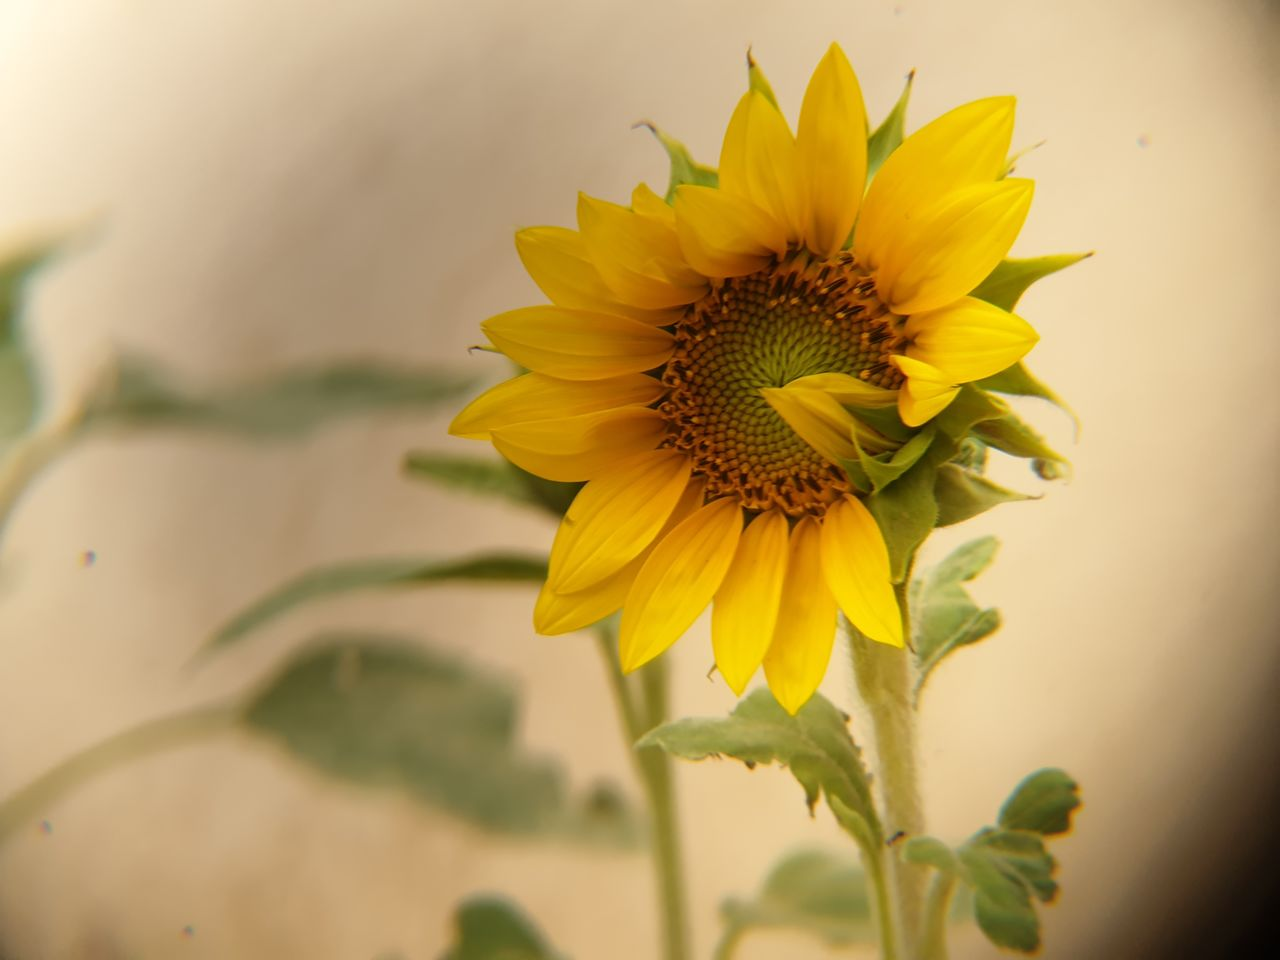 yellow, flowering plant, flower, fragility, petal, vulnerability, freshness, beauty in nature, plant, flower head, inflorescence, growth, close-up, focus on foreground, nature, pollen, no people, sunflower, outdoors, sepal